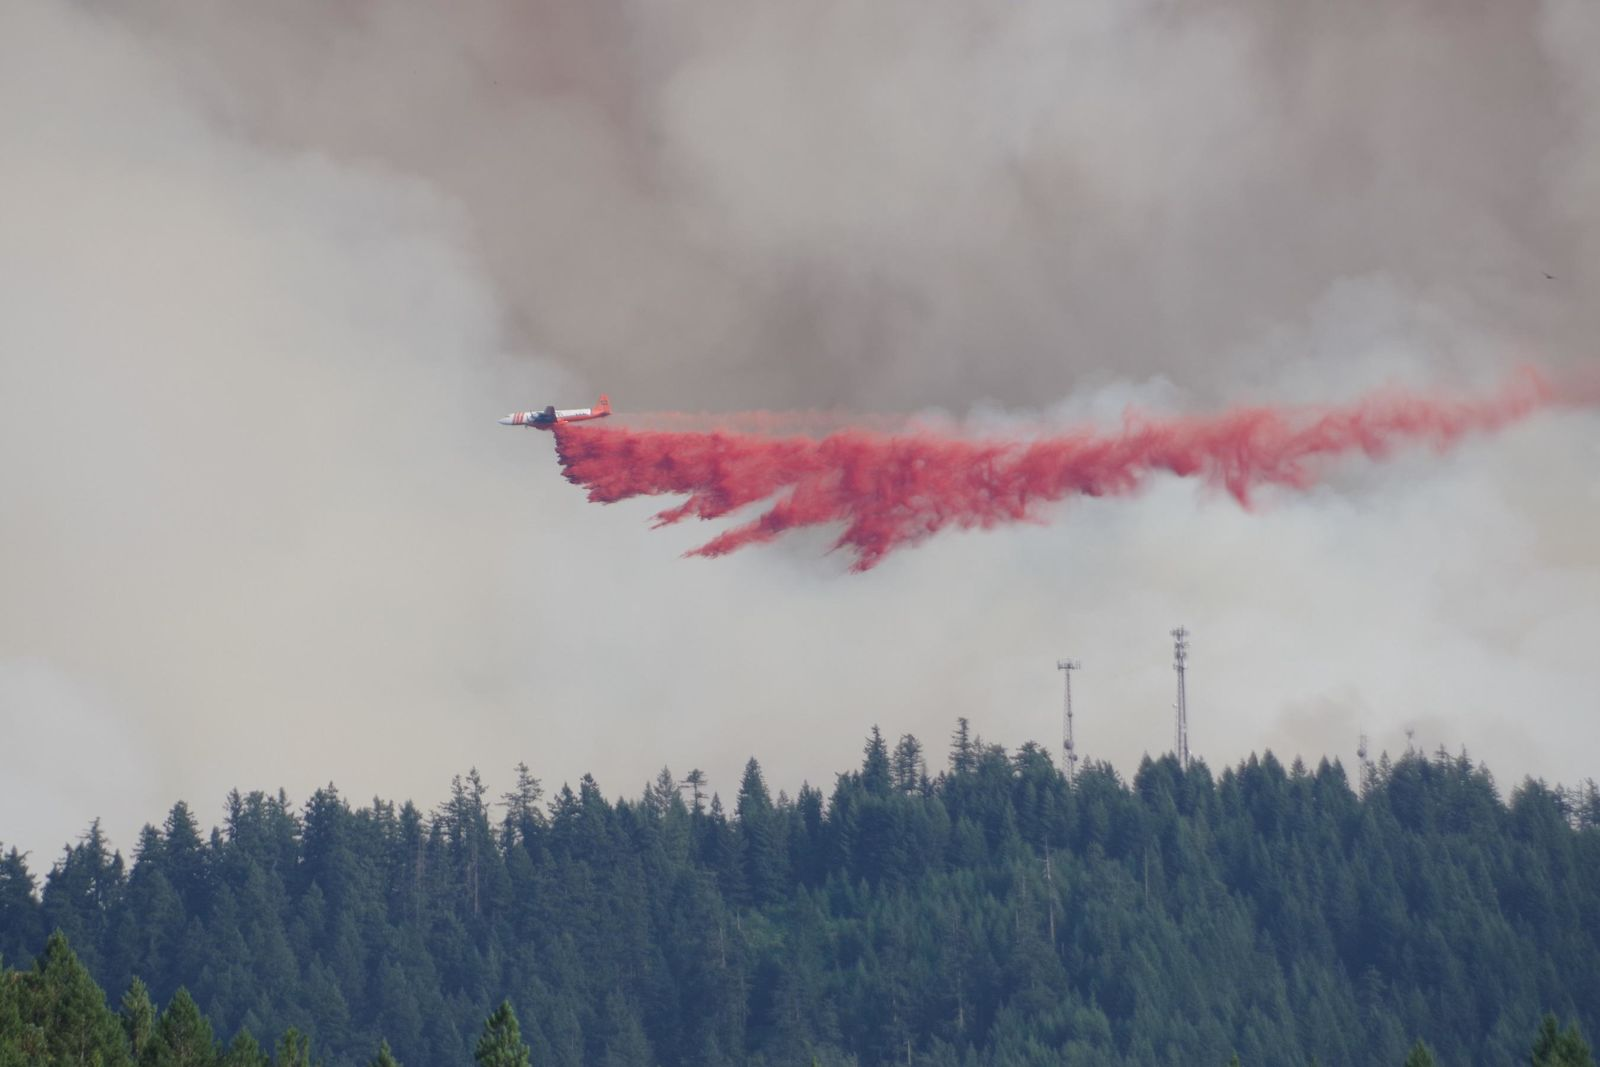 An airplane drops retardant on the Milepost 97 fire near Canyonville, Oregon. (Photo: InciWeb)